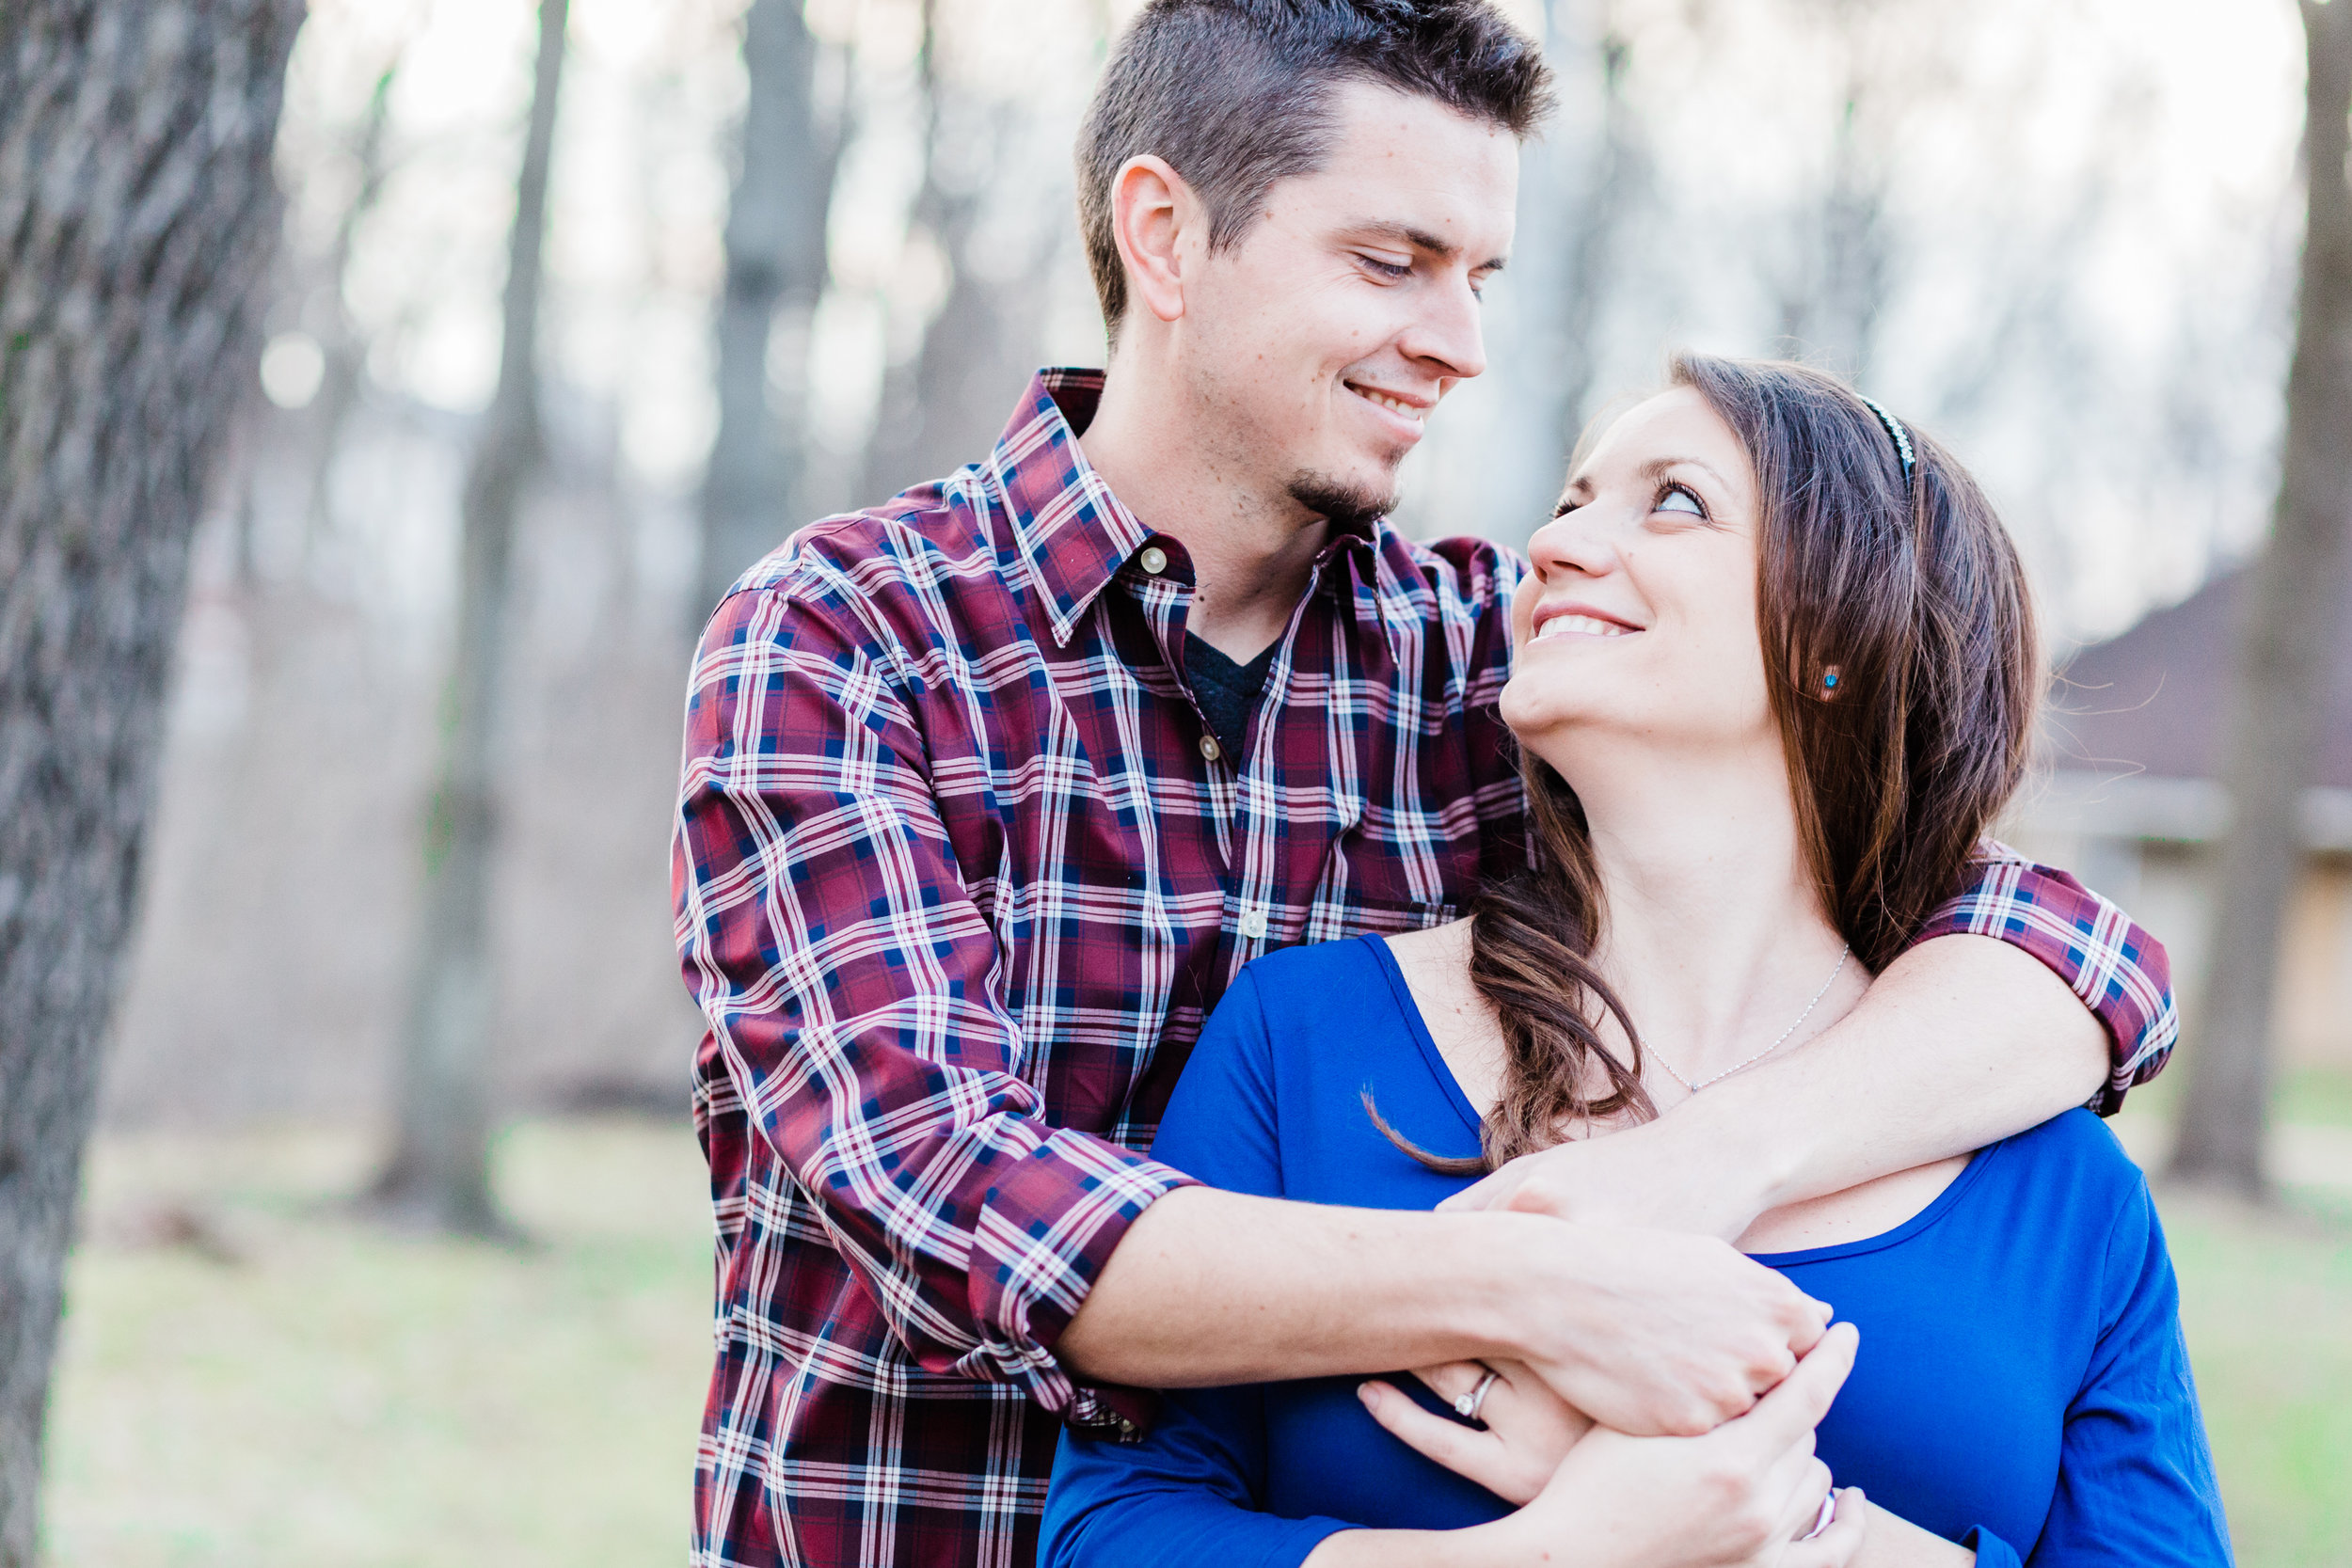 lock ridge park maternity session lytle photography company (55 of 116).jpg